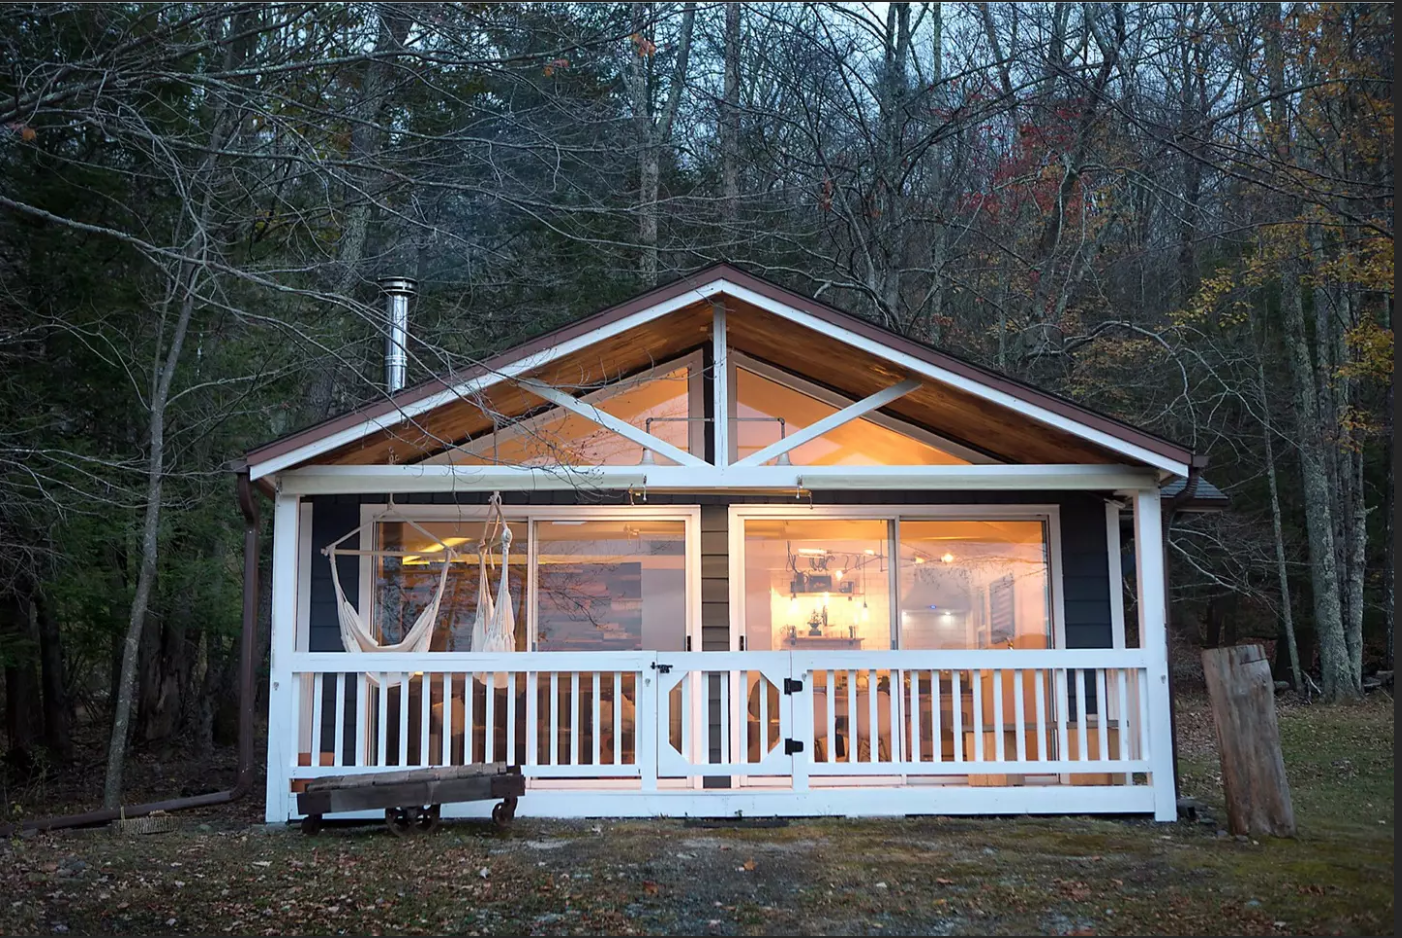 Ben proposed to Allison while she was sitting on the hammock of this cabin in the Catskills on October 12, 2017.